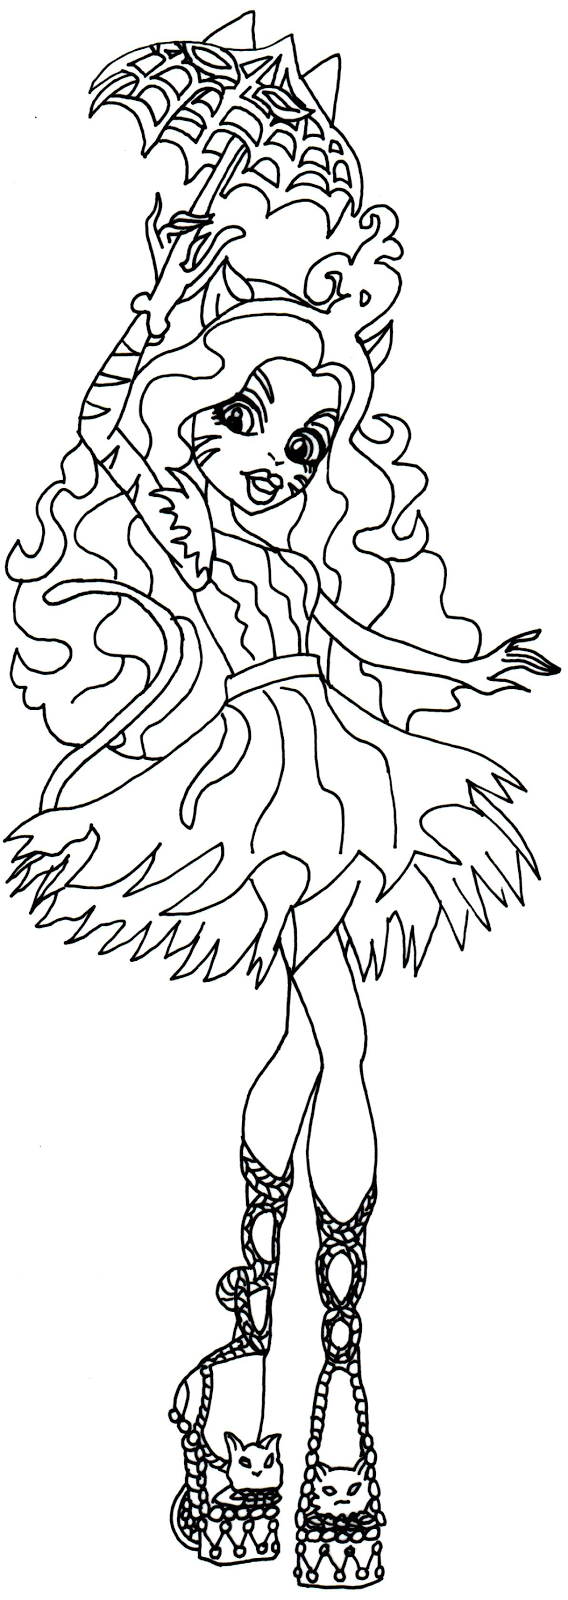 toralei stripe freak du chic monster high coloring page